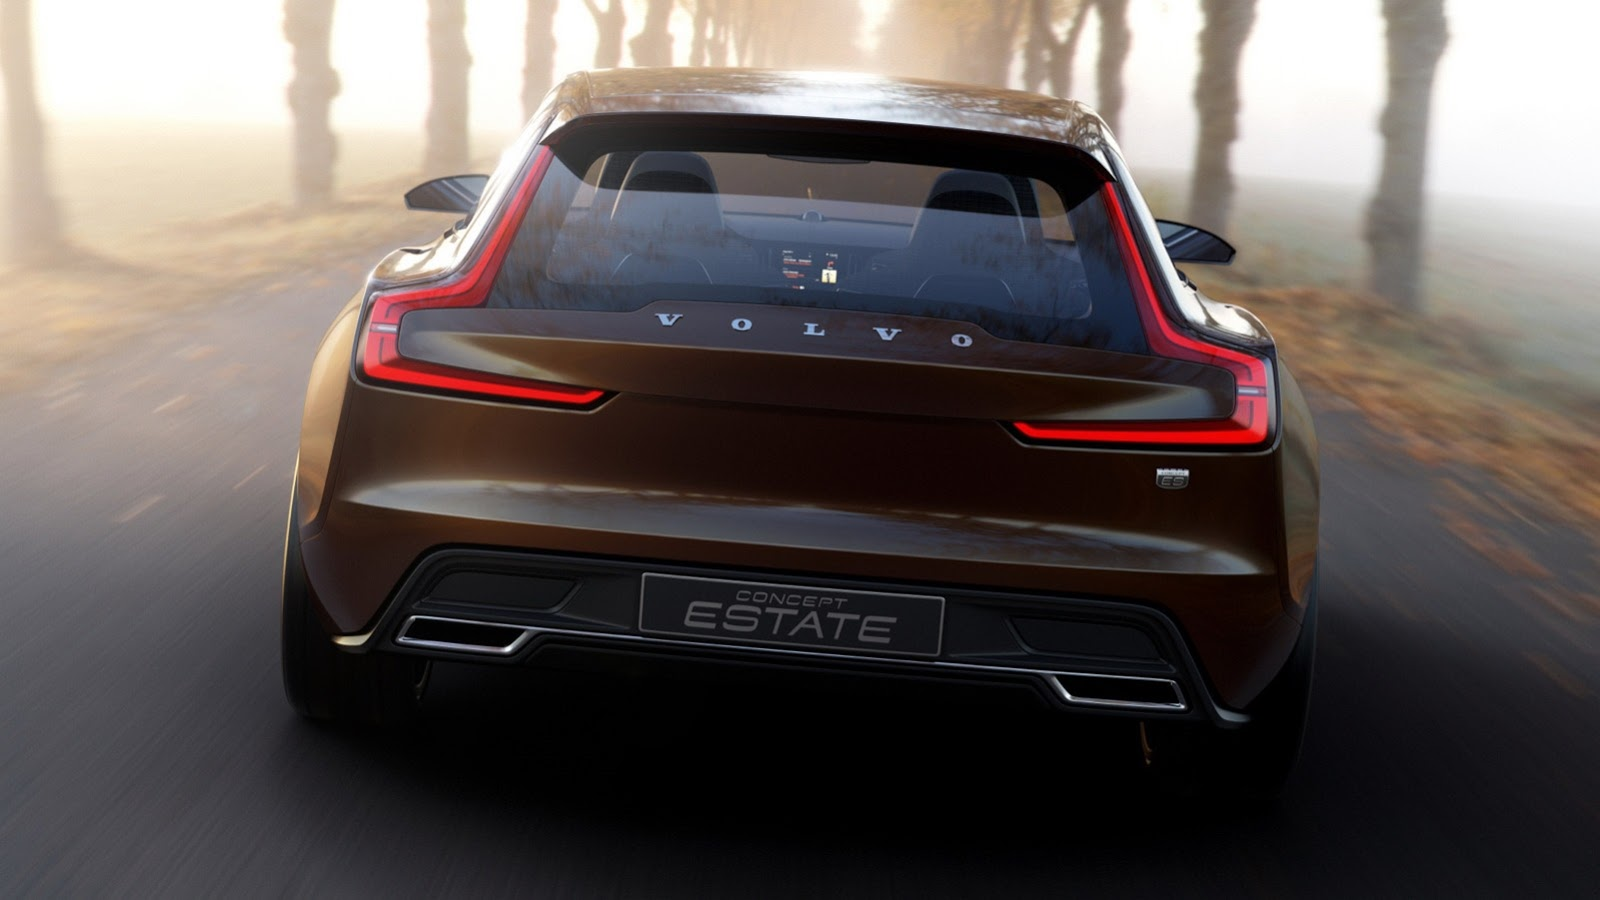 Lexus Lf Lc Price >> Volvo Cars - News: Volvo Estate Concept leaked ahead of debut